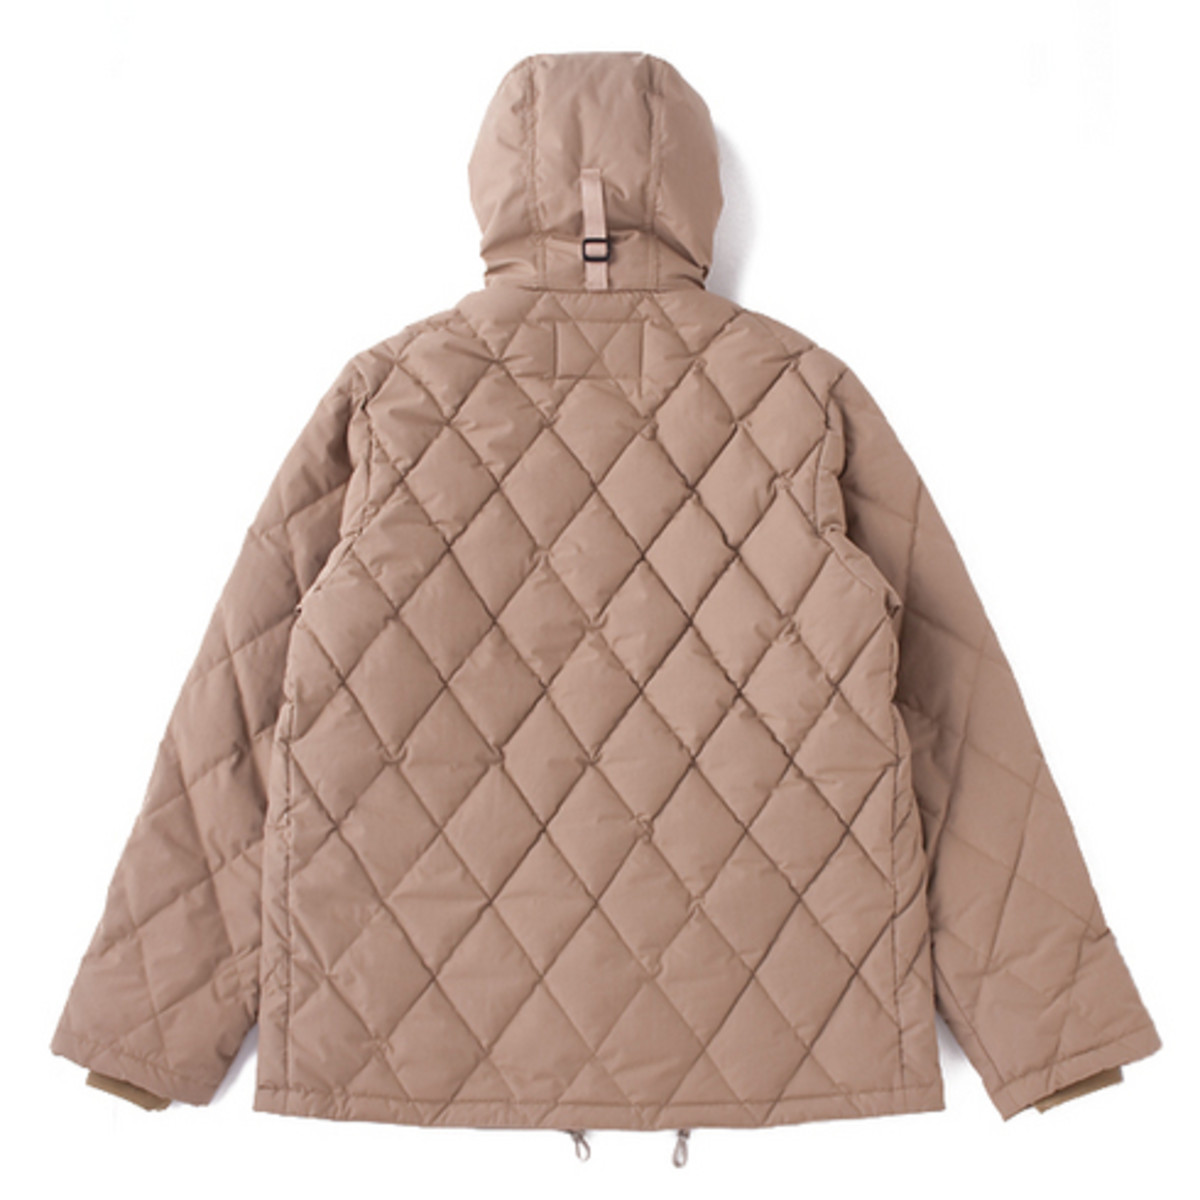 quilting-jacket2